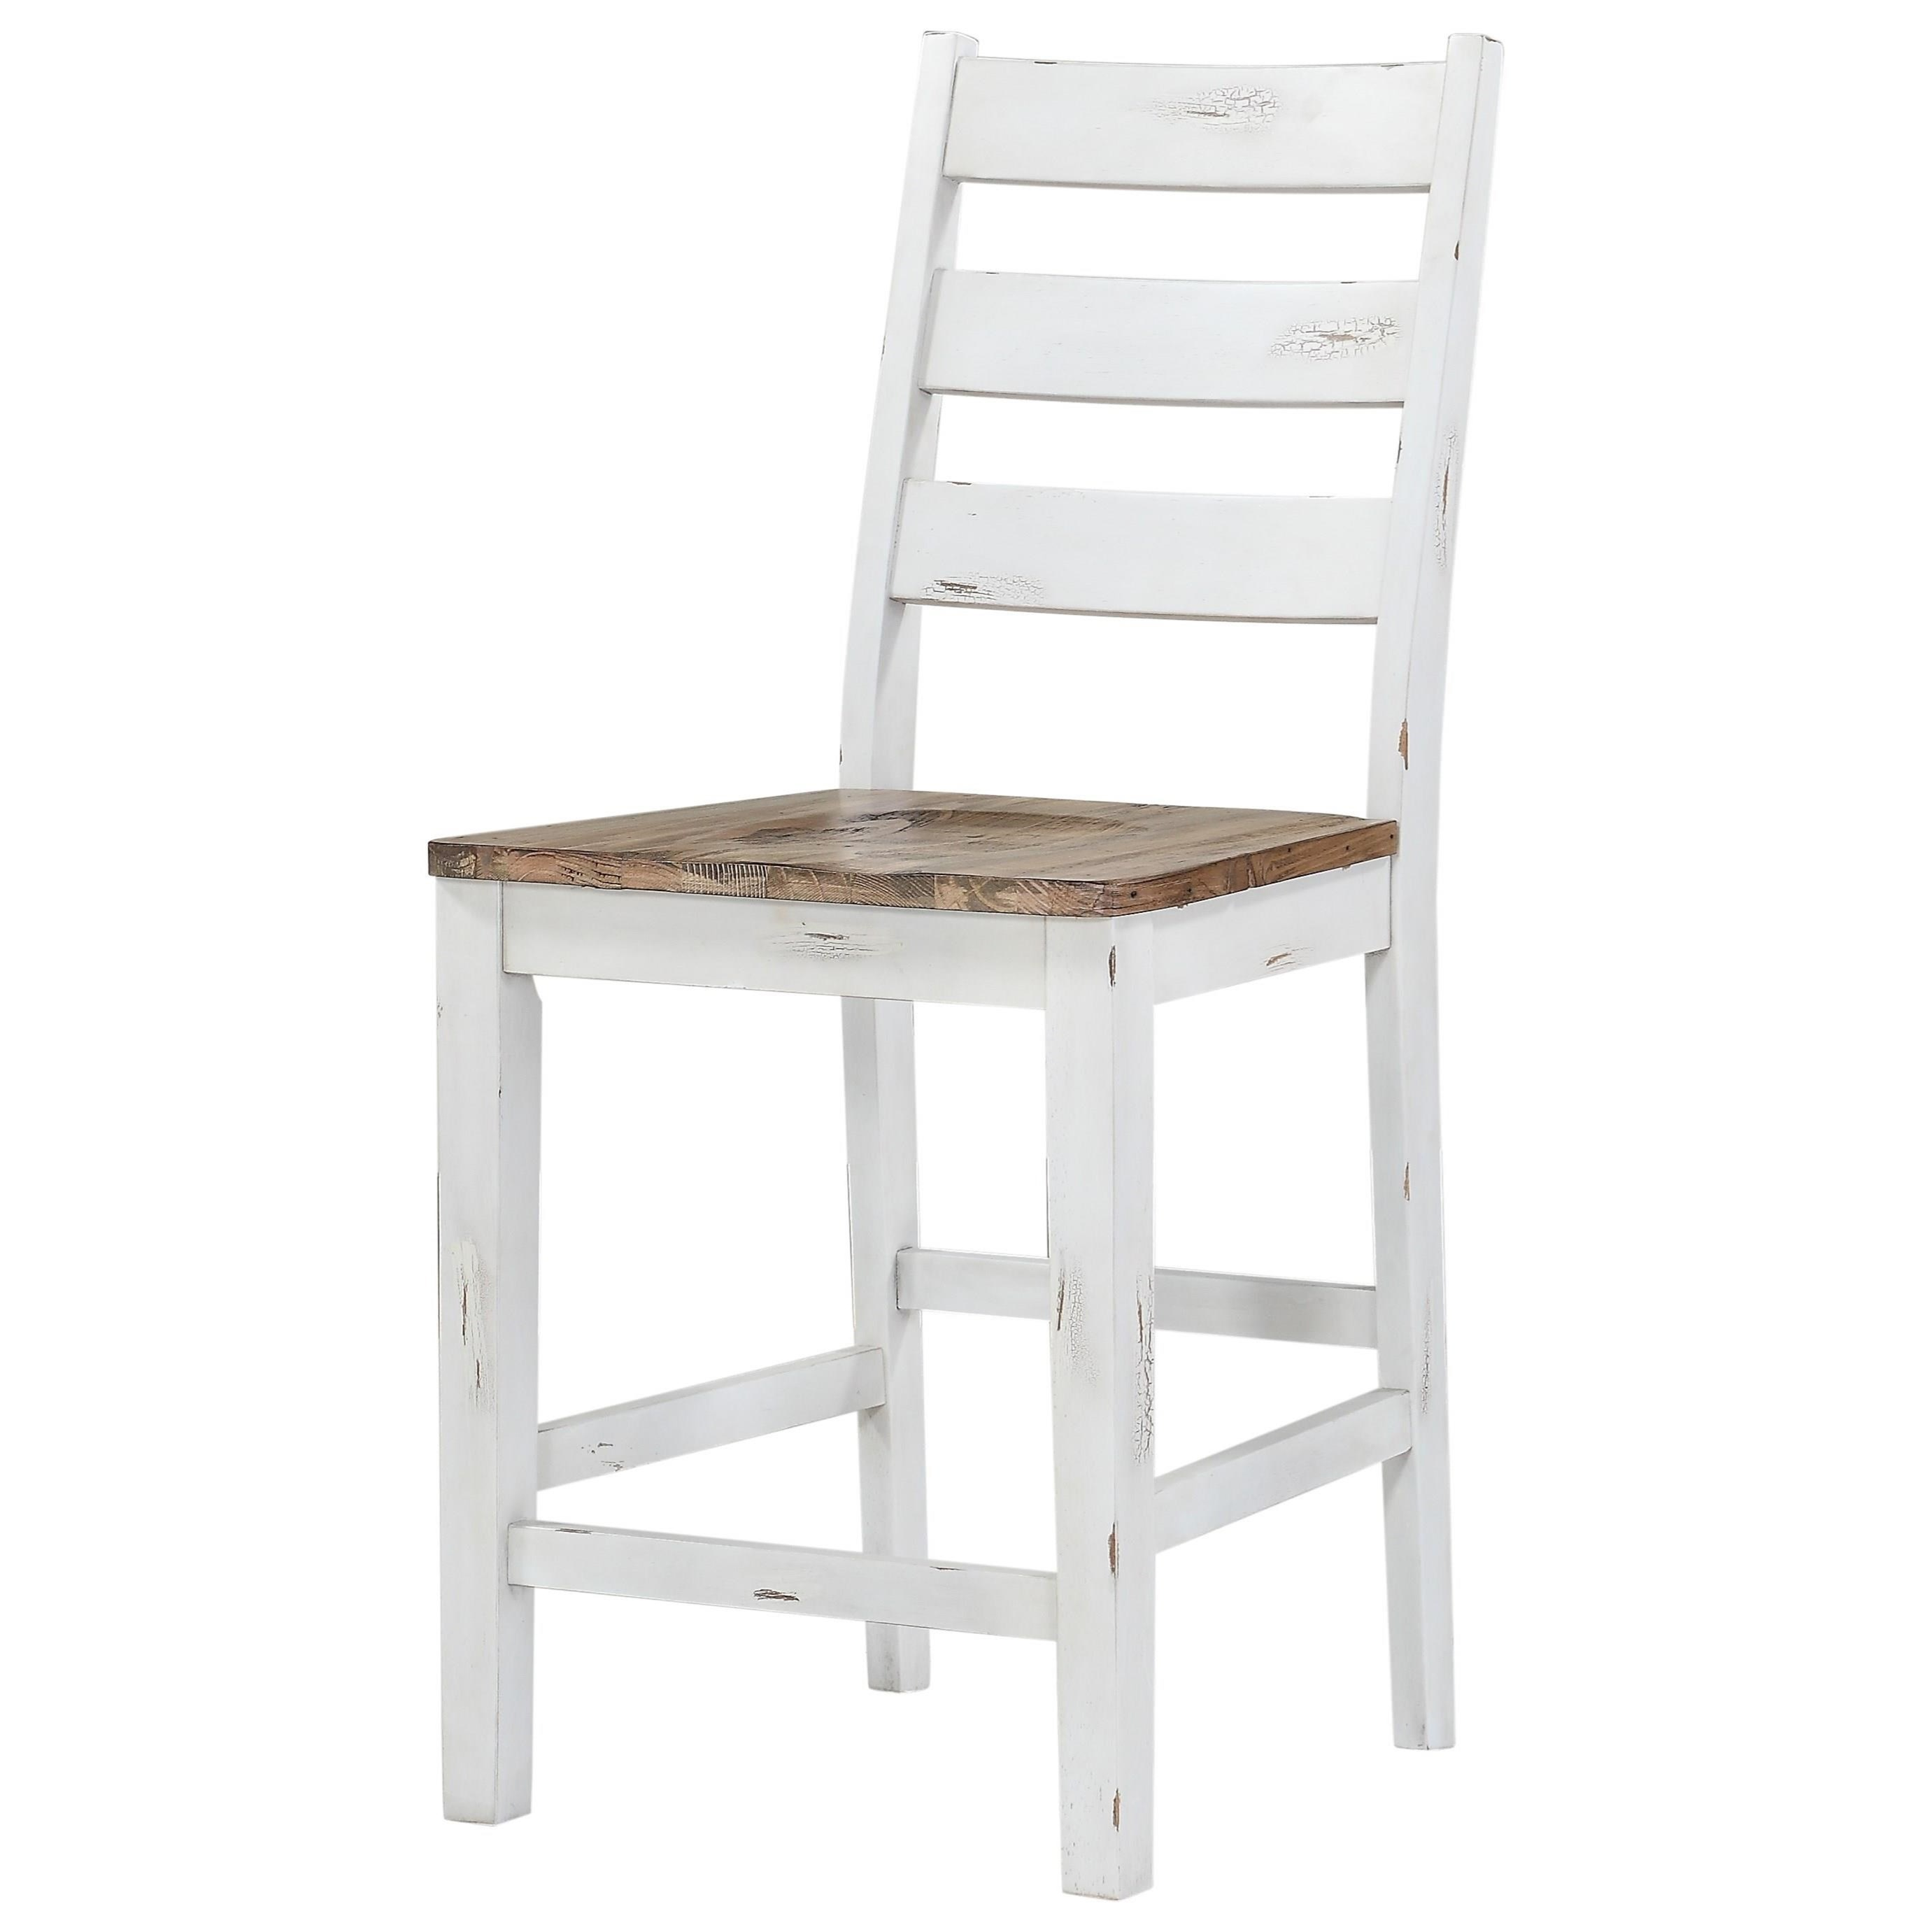 Abaco Ladderback Barstool by Emerald at Northeast Factory Direct